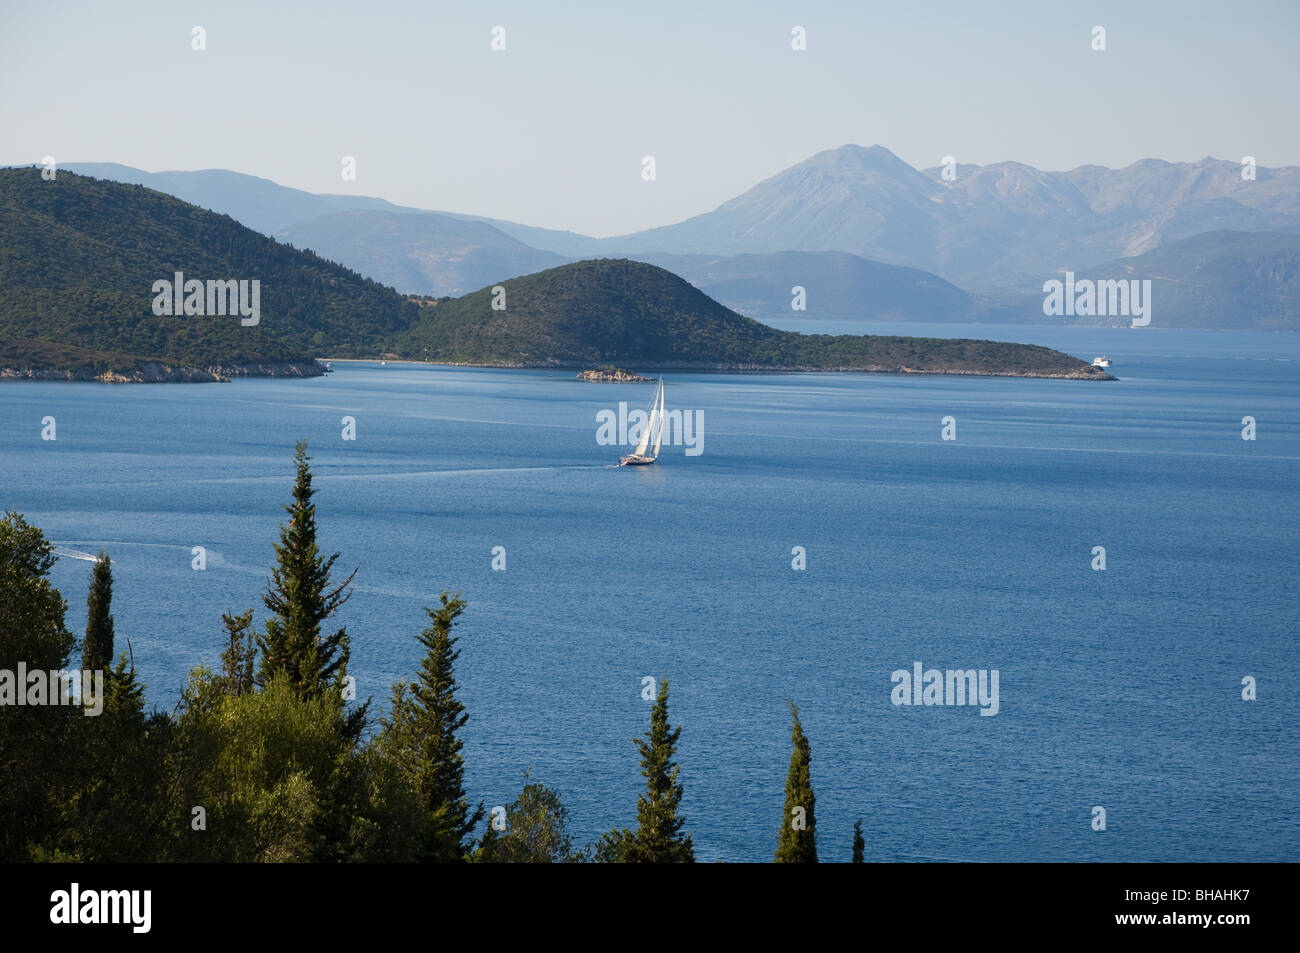 A view toward Kefalonia from Ithaca, The Ionian Islands, Greece - Stock Image